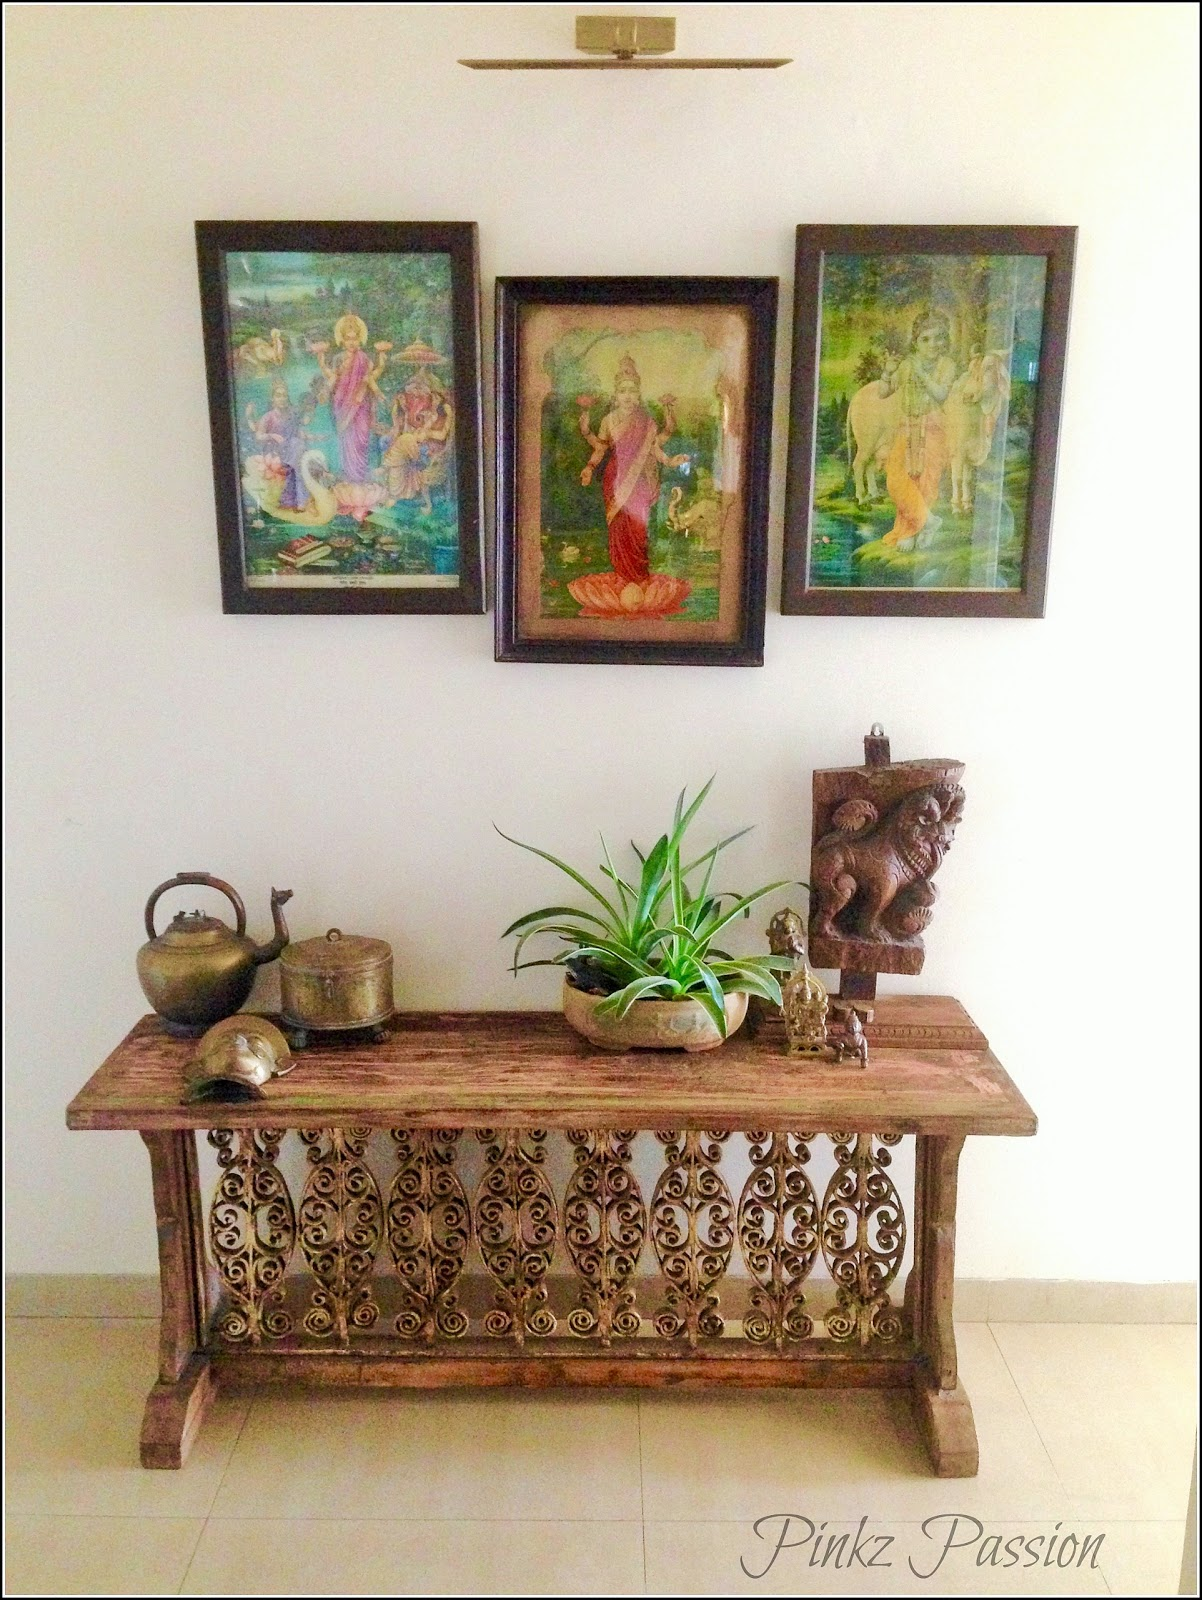 Pinkz passion a vintage modern home tour shalaka pingale for Contemporary indian home decor